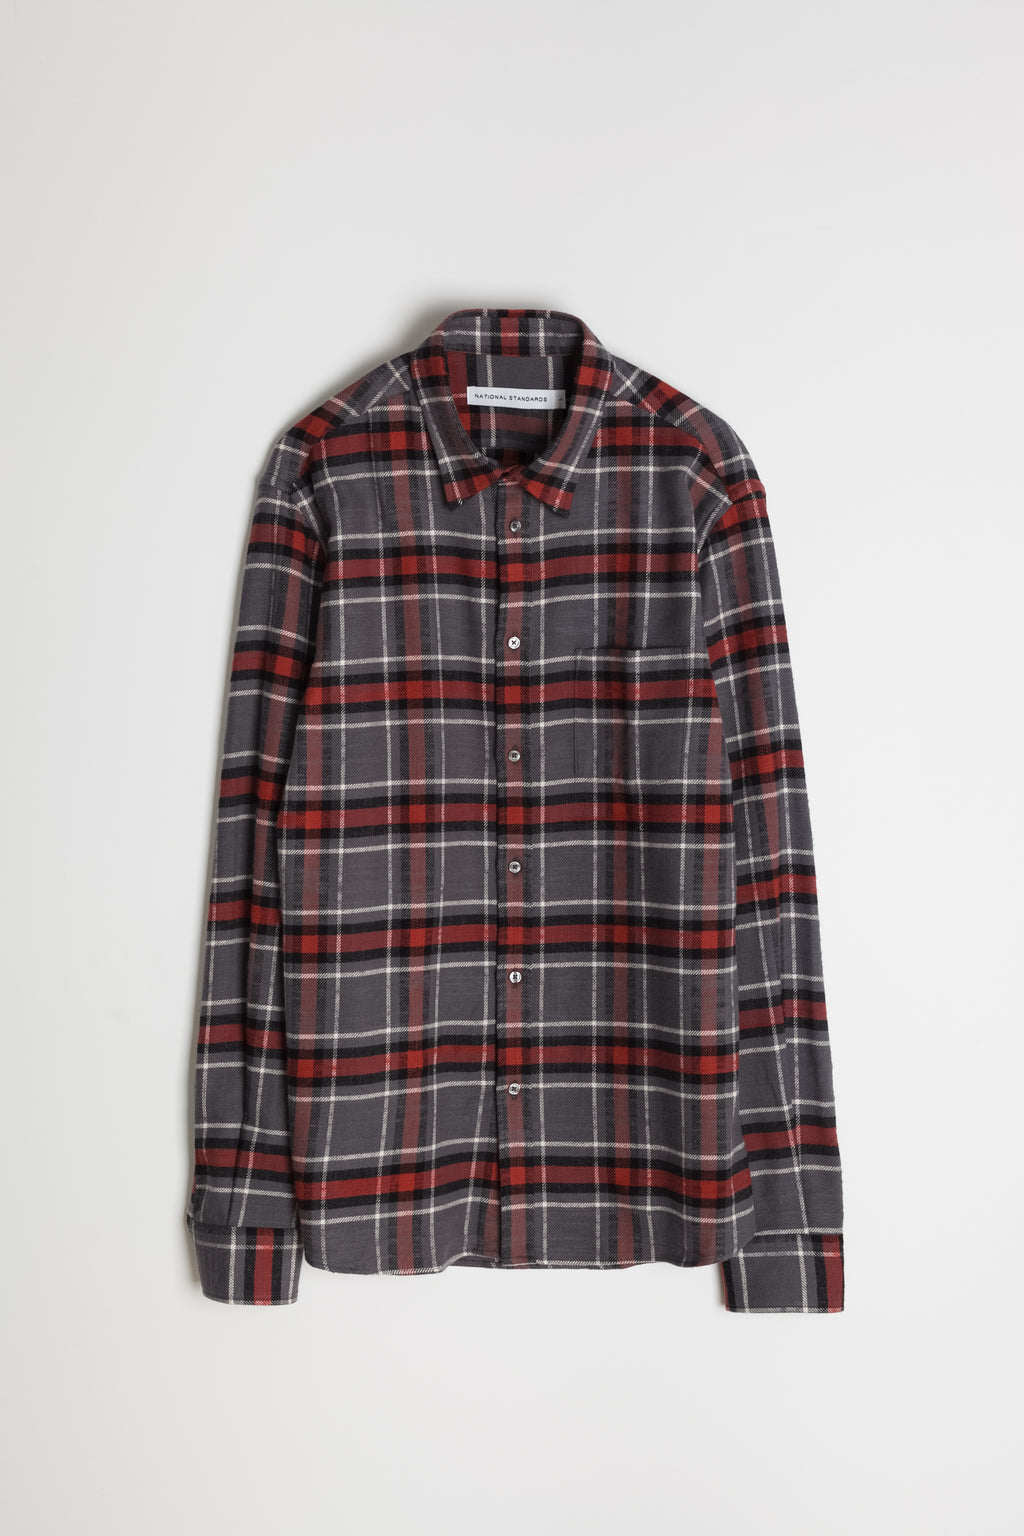 Japanese Cassidy Plaid in Grey and Rust 06